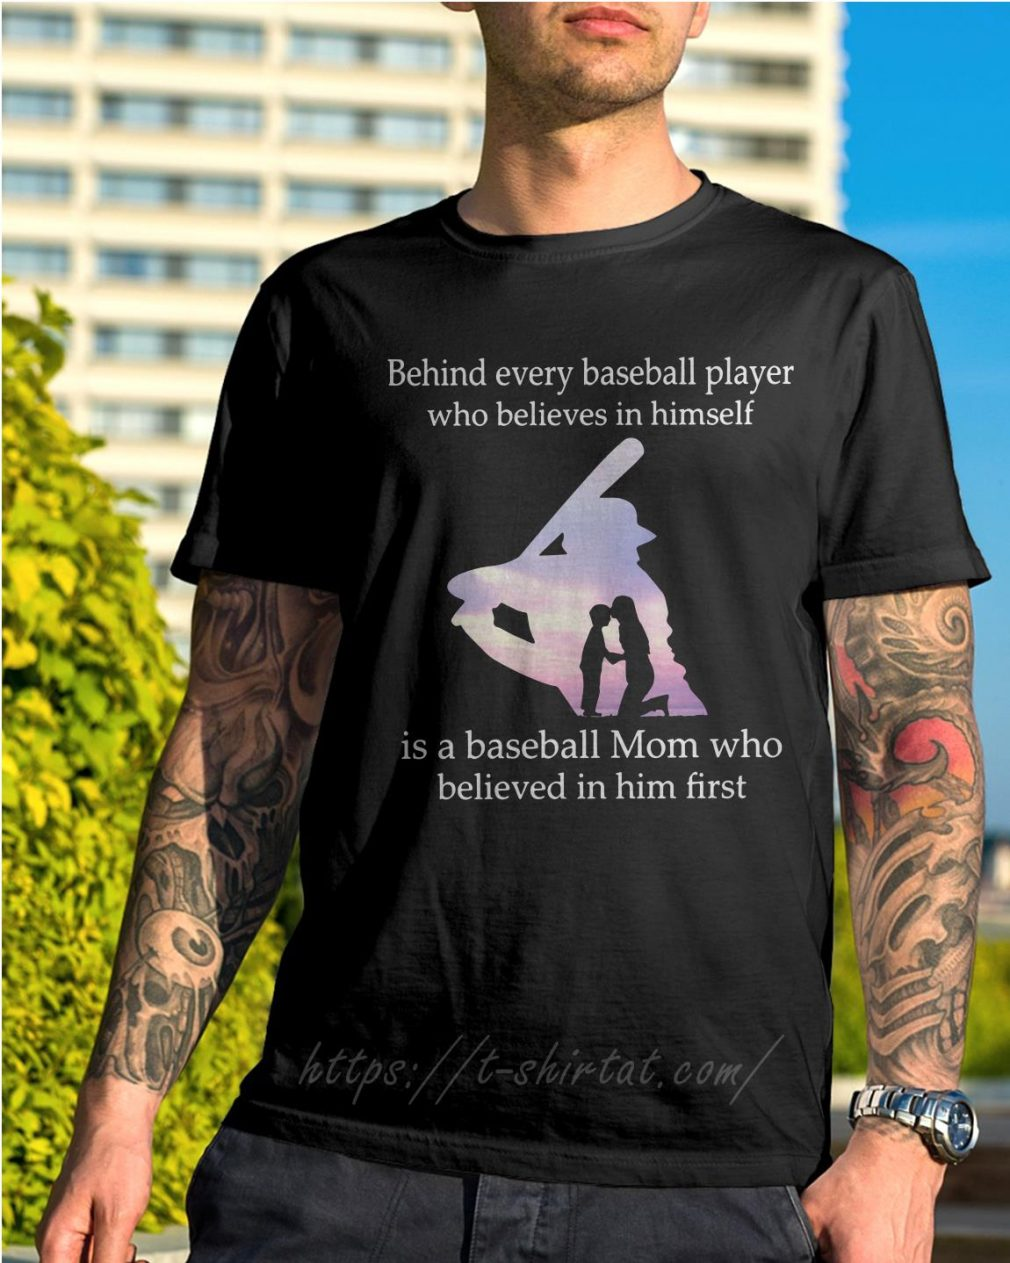 Behind every baseball player who believes in himself is a baseball mom who believed in him first shirt